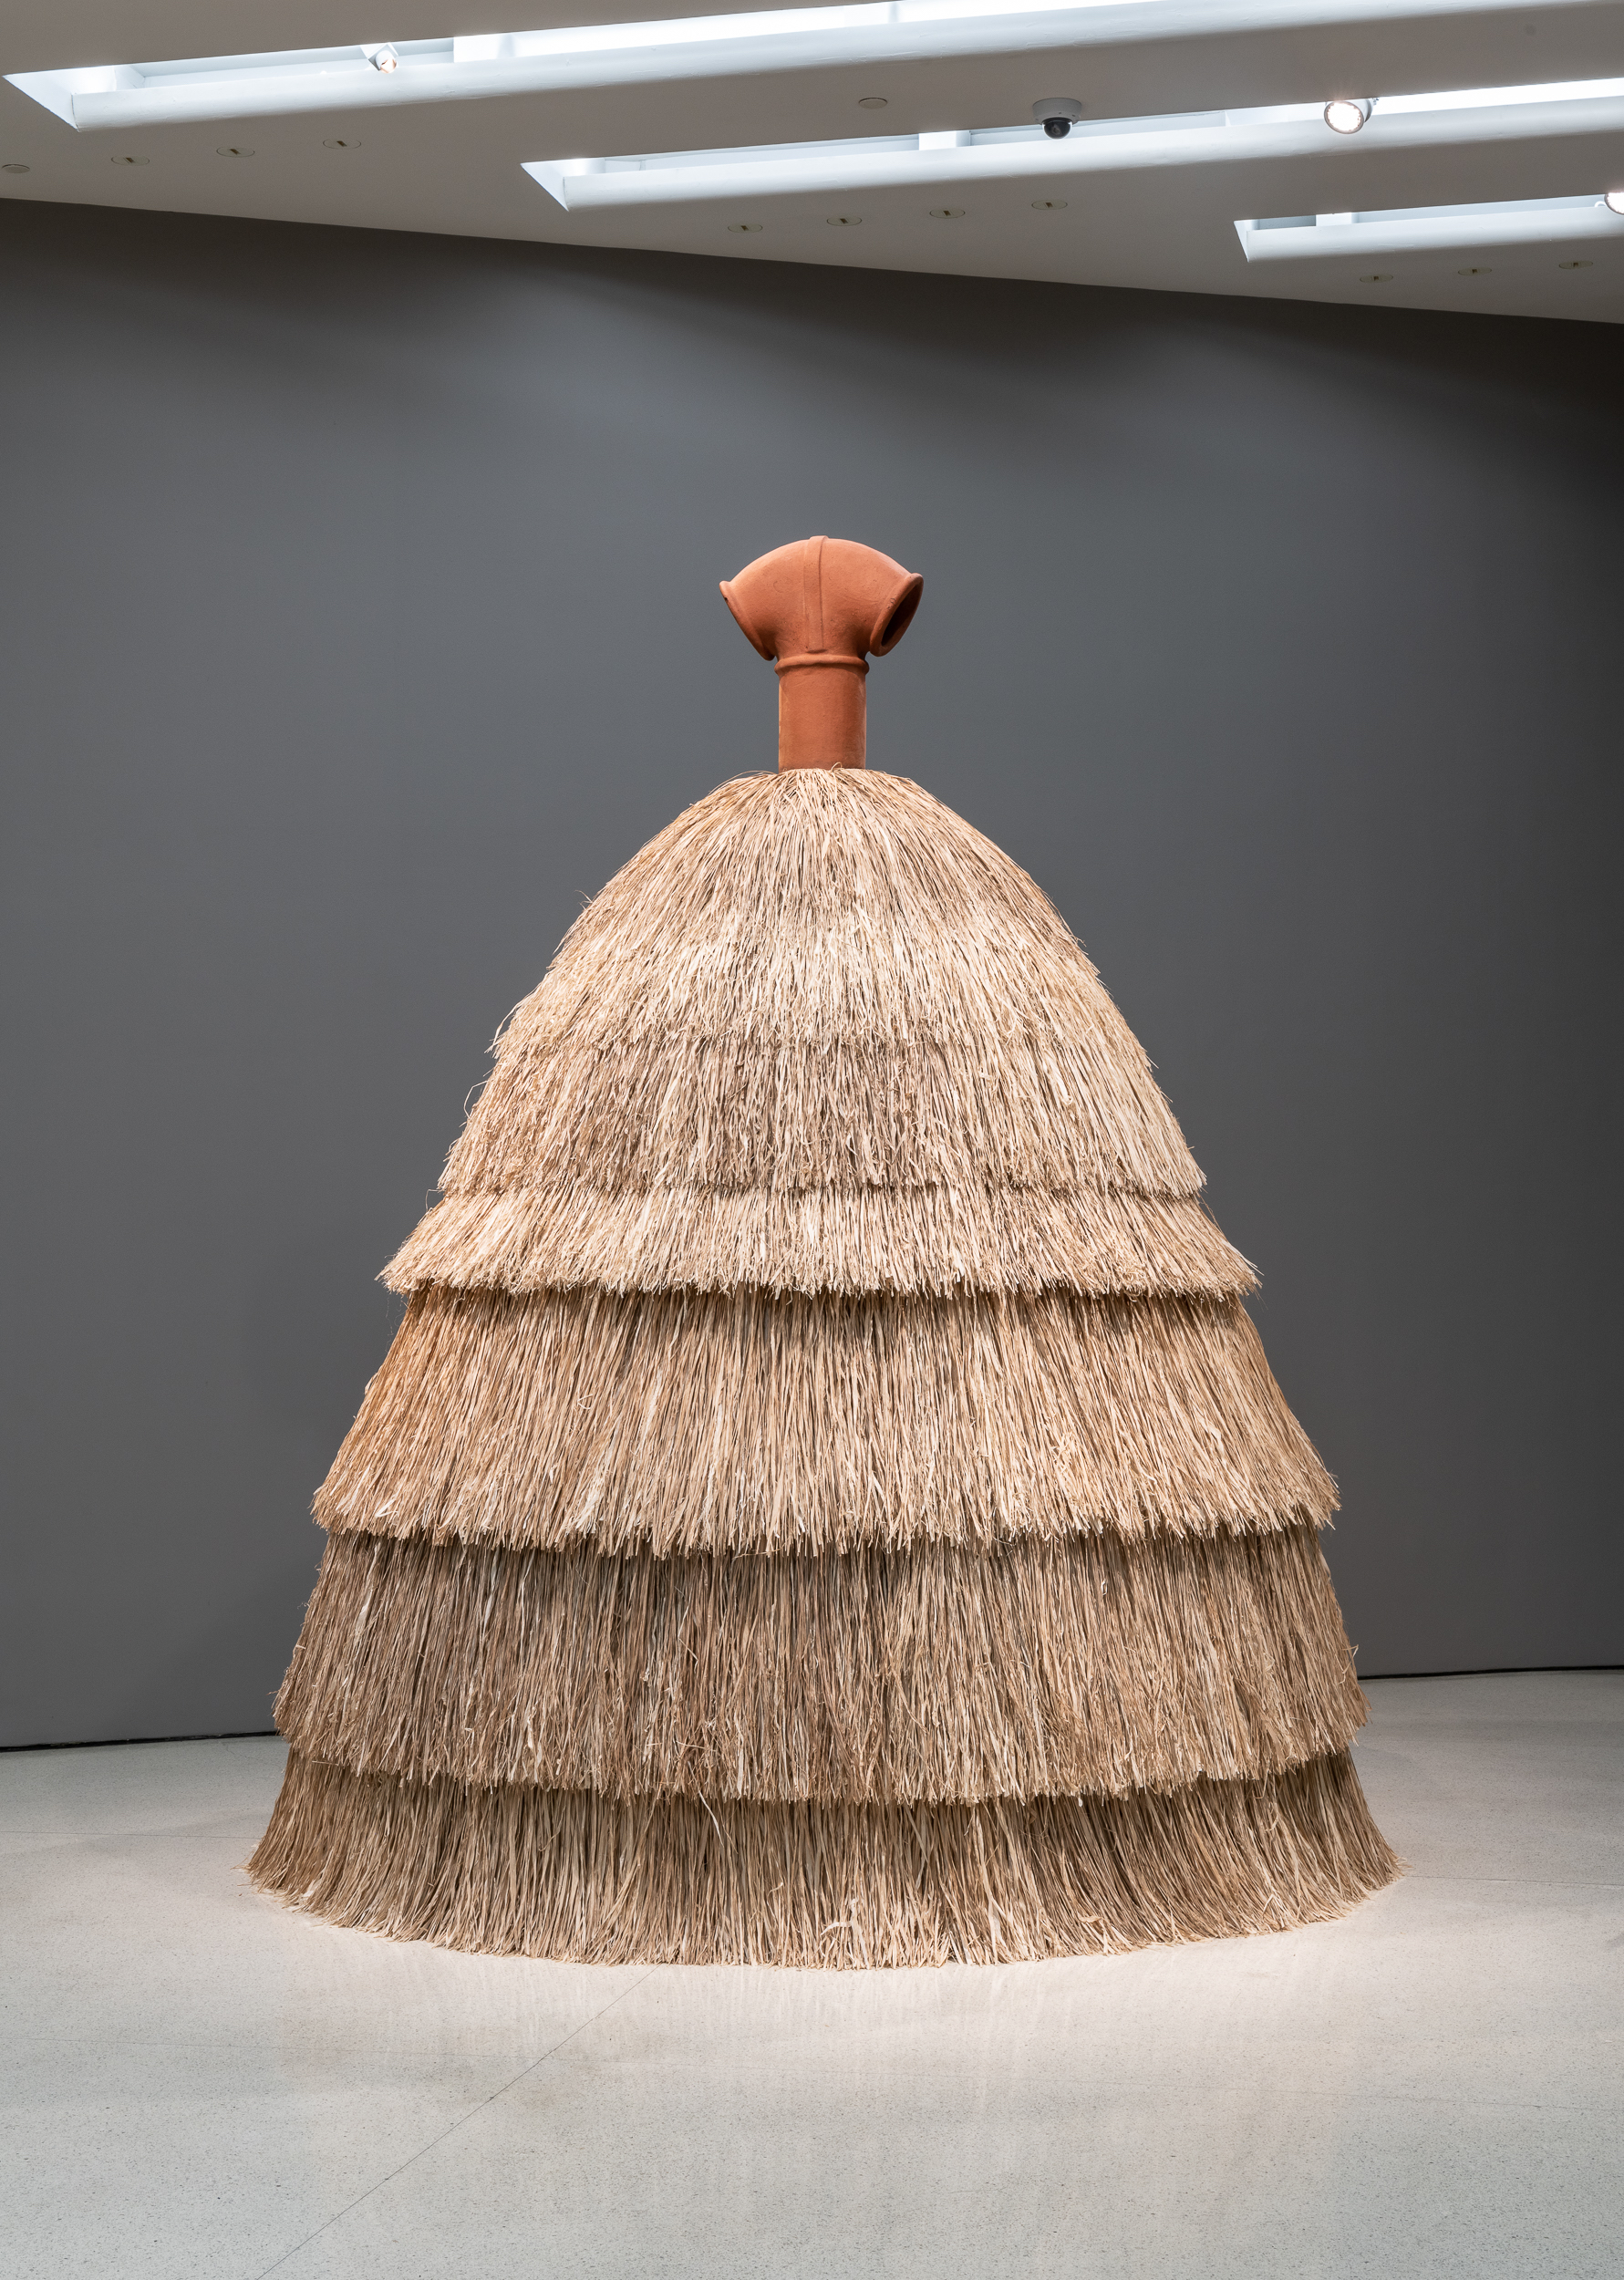 Simone Leigh  Panoptica , 2019 Terracotta pipe and chimney, steel, and raffia 317.5 x 304.8 cm Courtesy the artist and Luhring Augustine, New York Installation view:  The Hugo Boss Prize 2018: Simone Leigh, Loophole of Retreat , Solomon R. Guggenheim Museum, New York, April 19–October 27,2019. Photo: David Heald © 2019 The Solomon R. Guggenheim Foundation